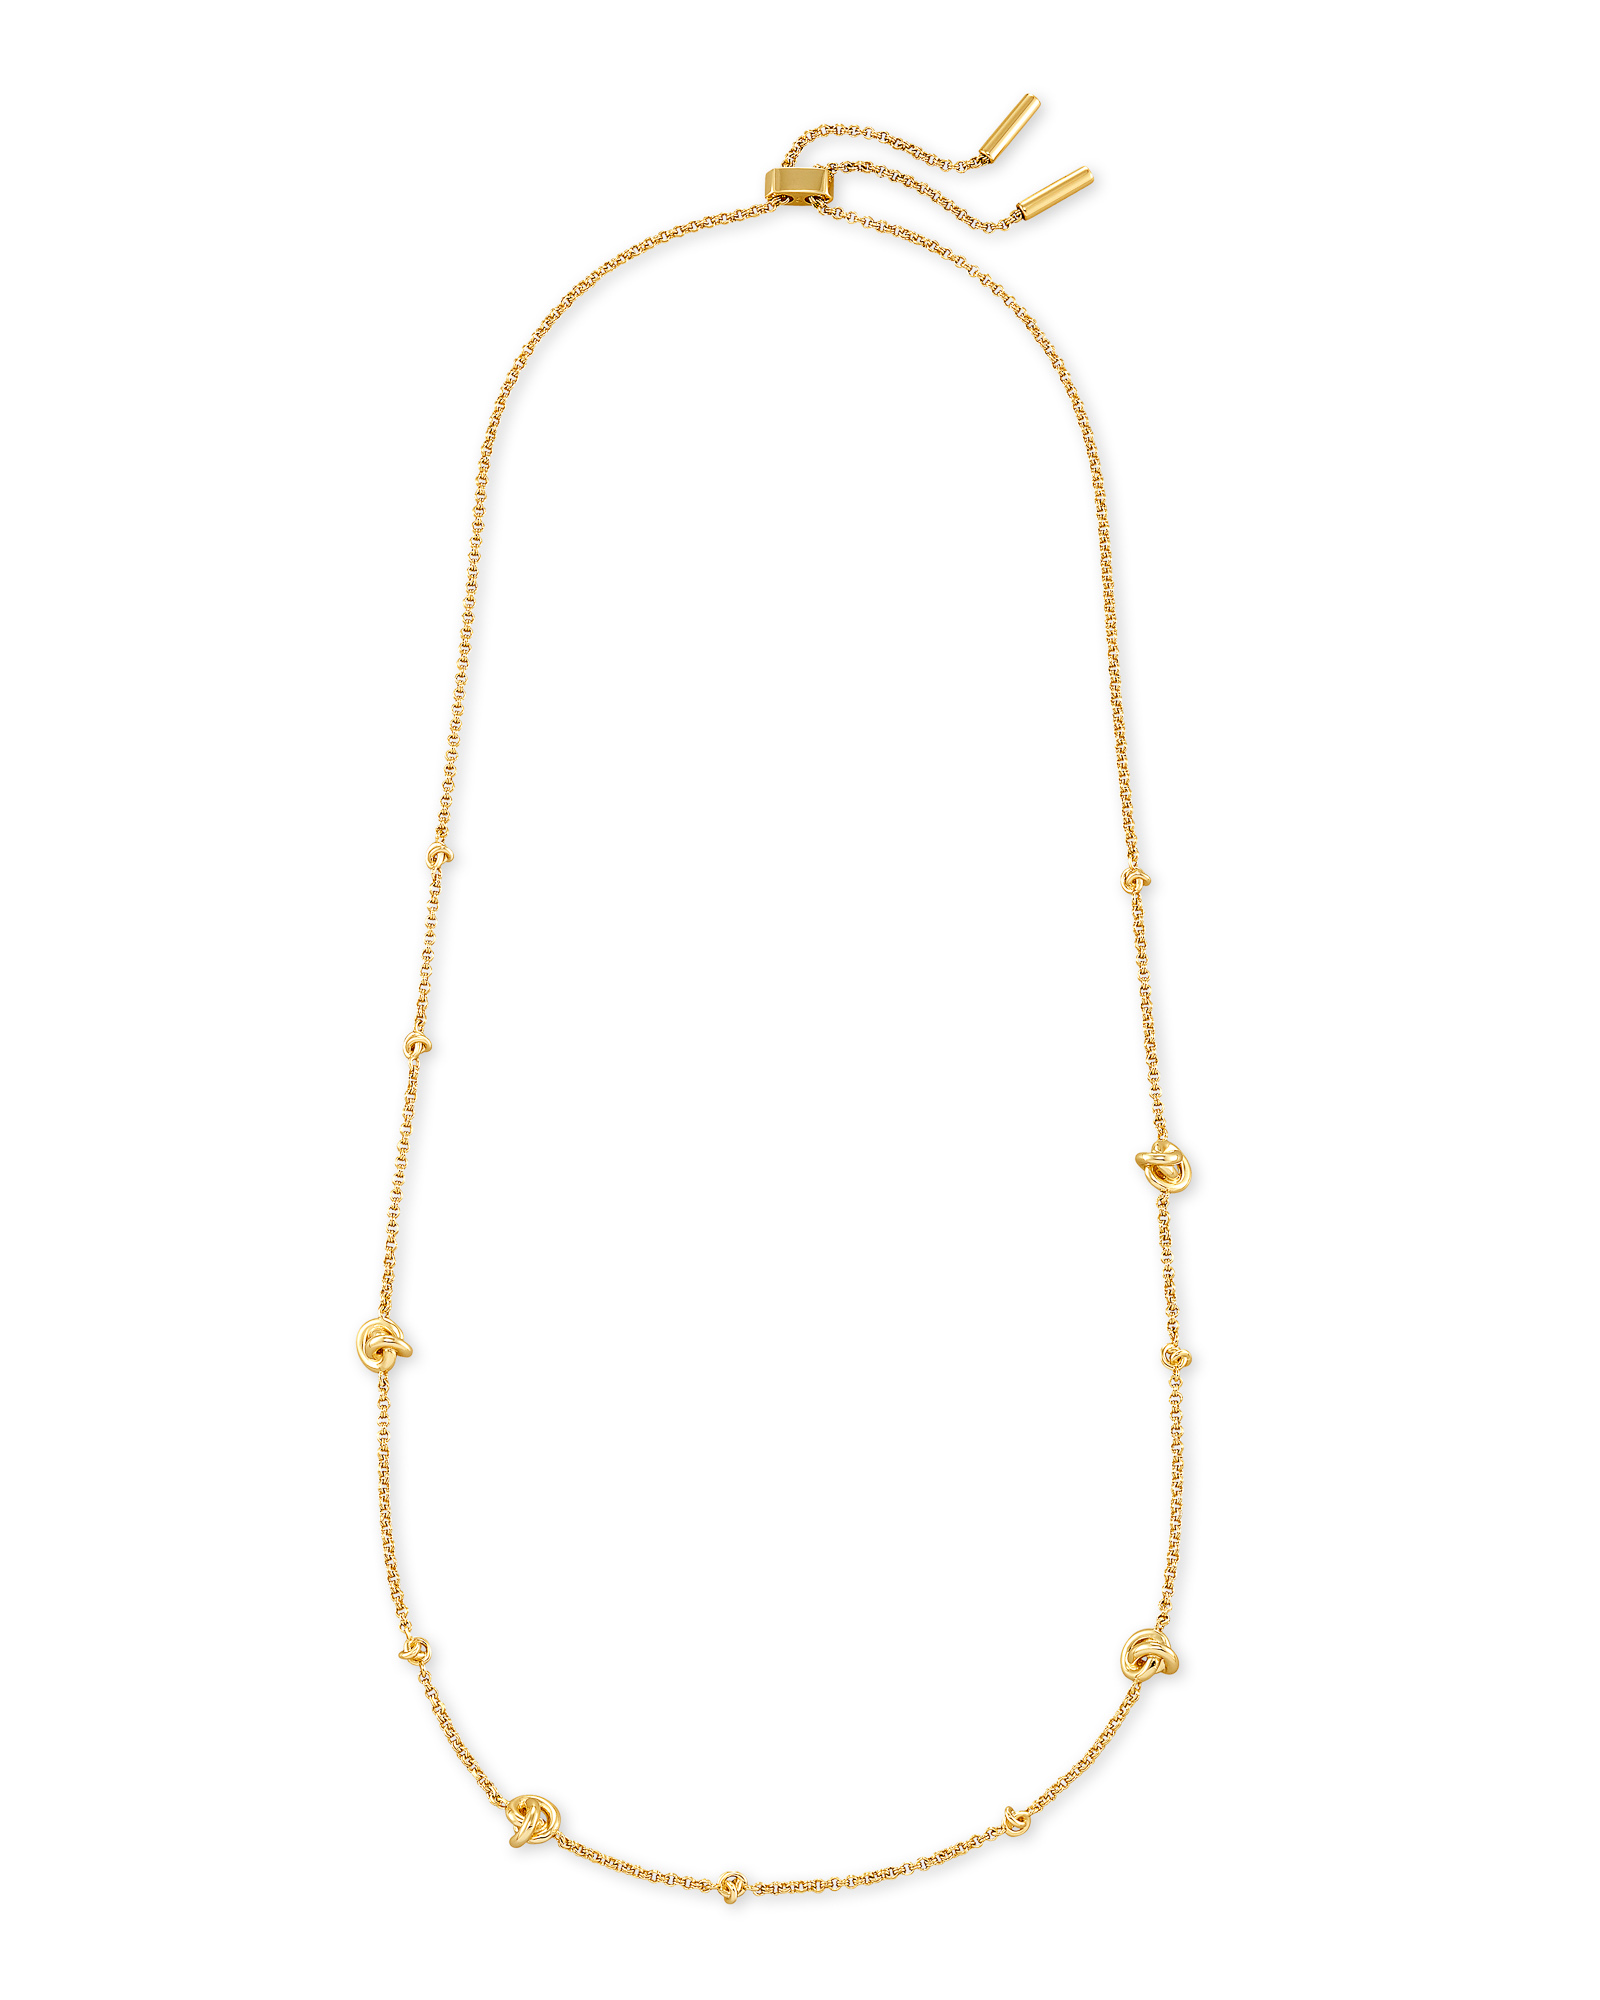 Presleigh Love Knot Adjustable Necklace in Gold